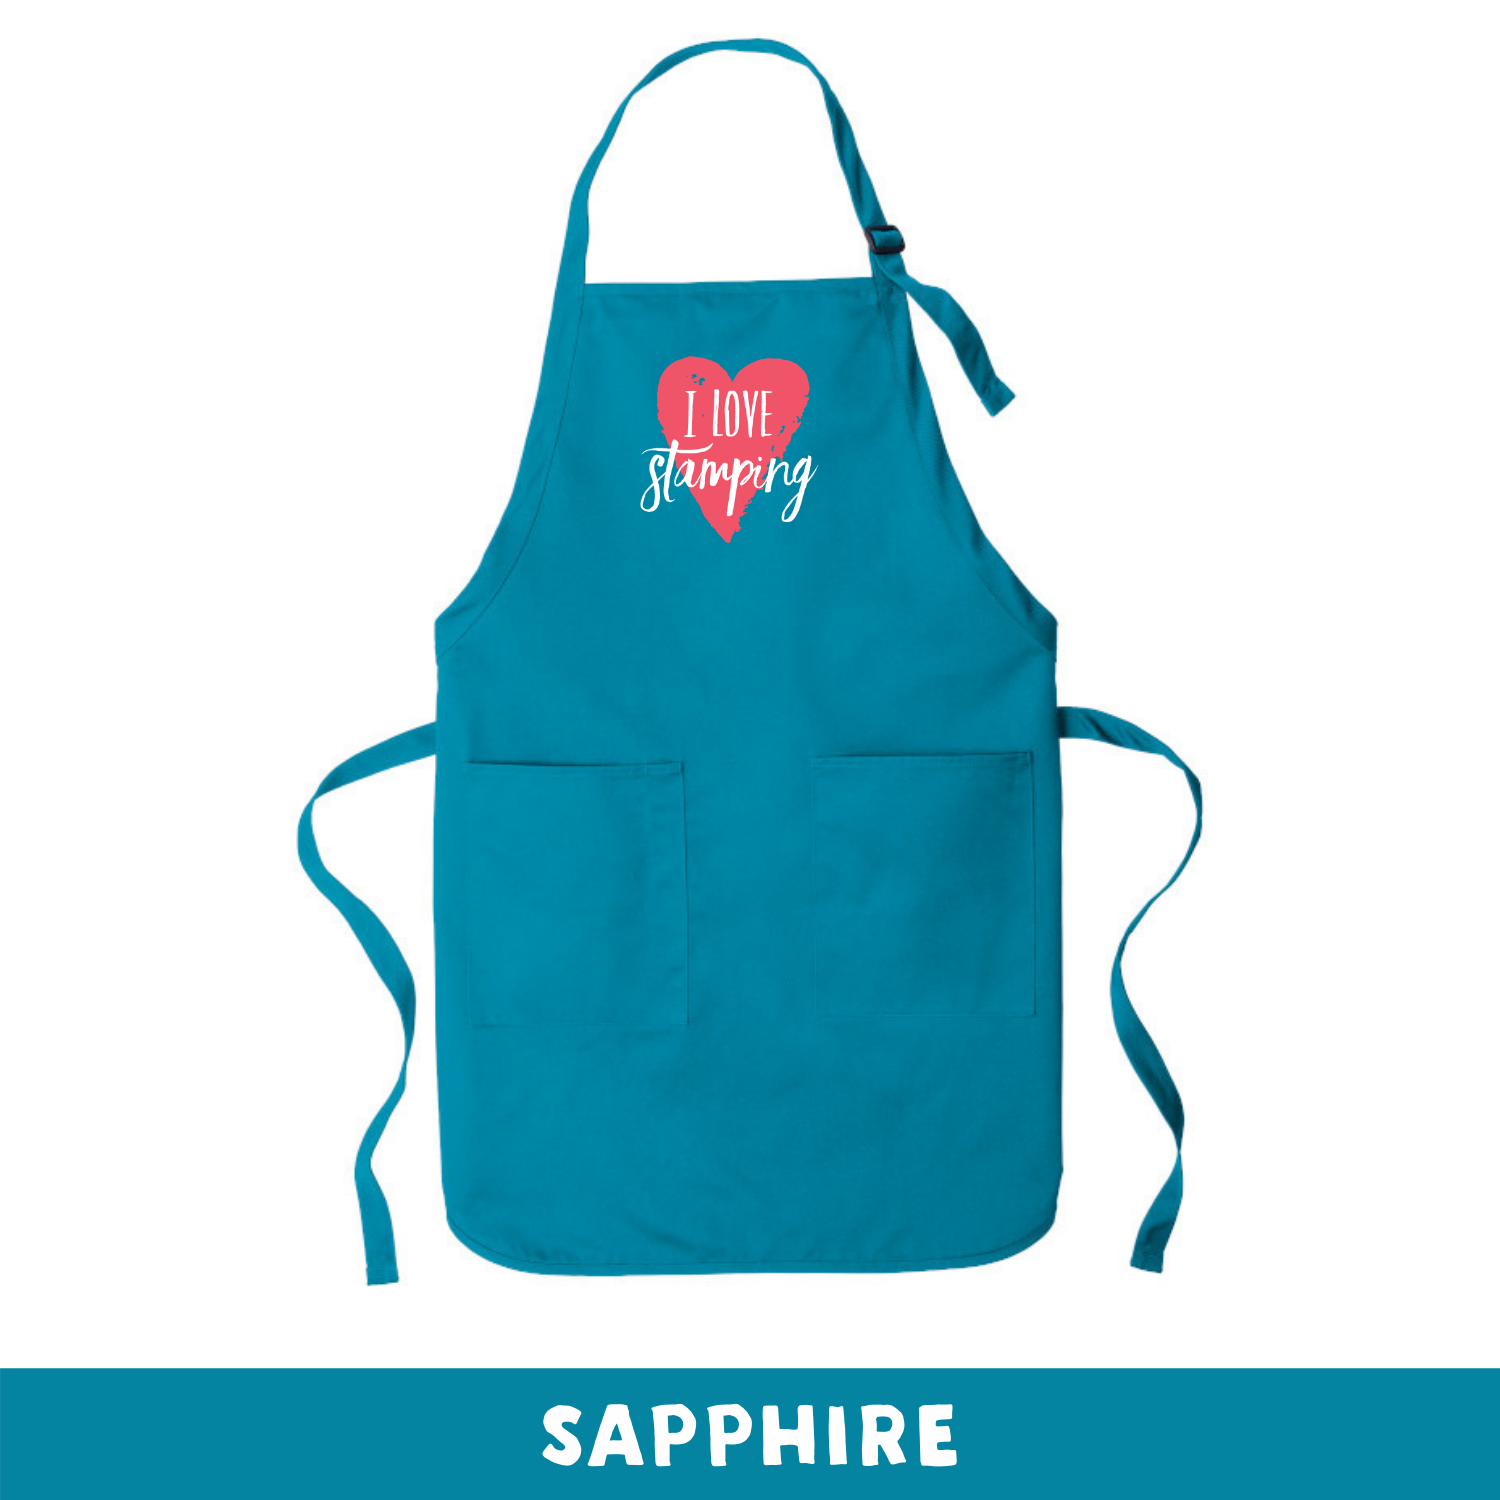 Sapphire - Apron - I Love Stamping